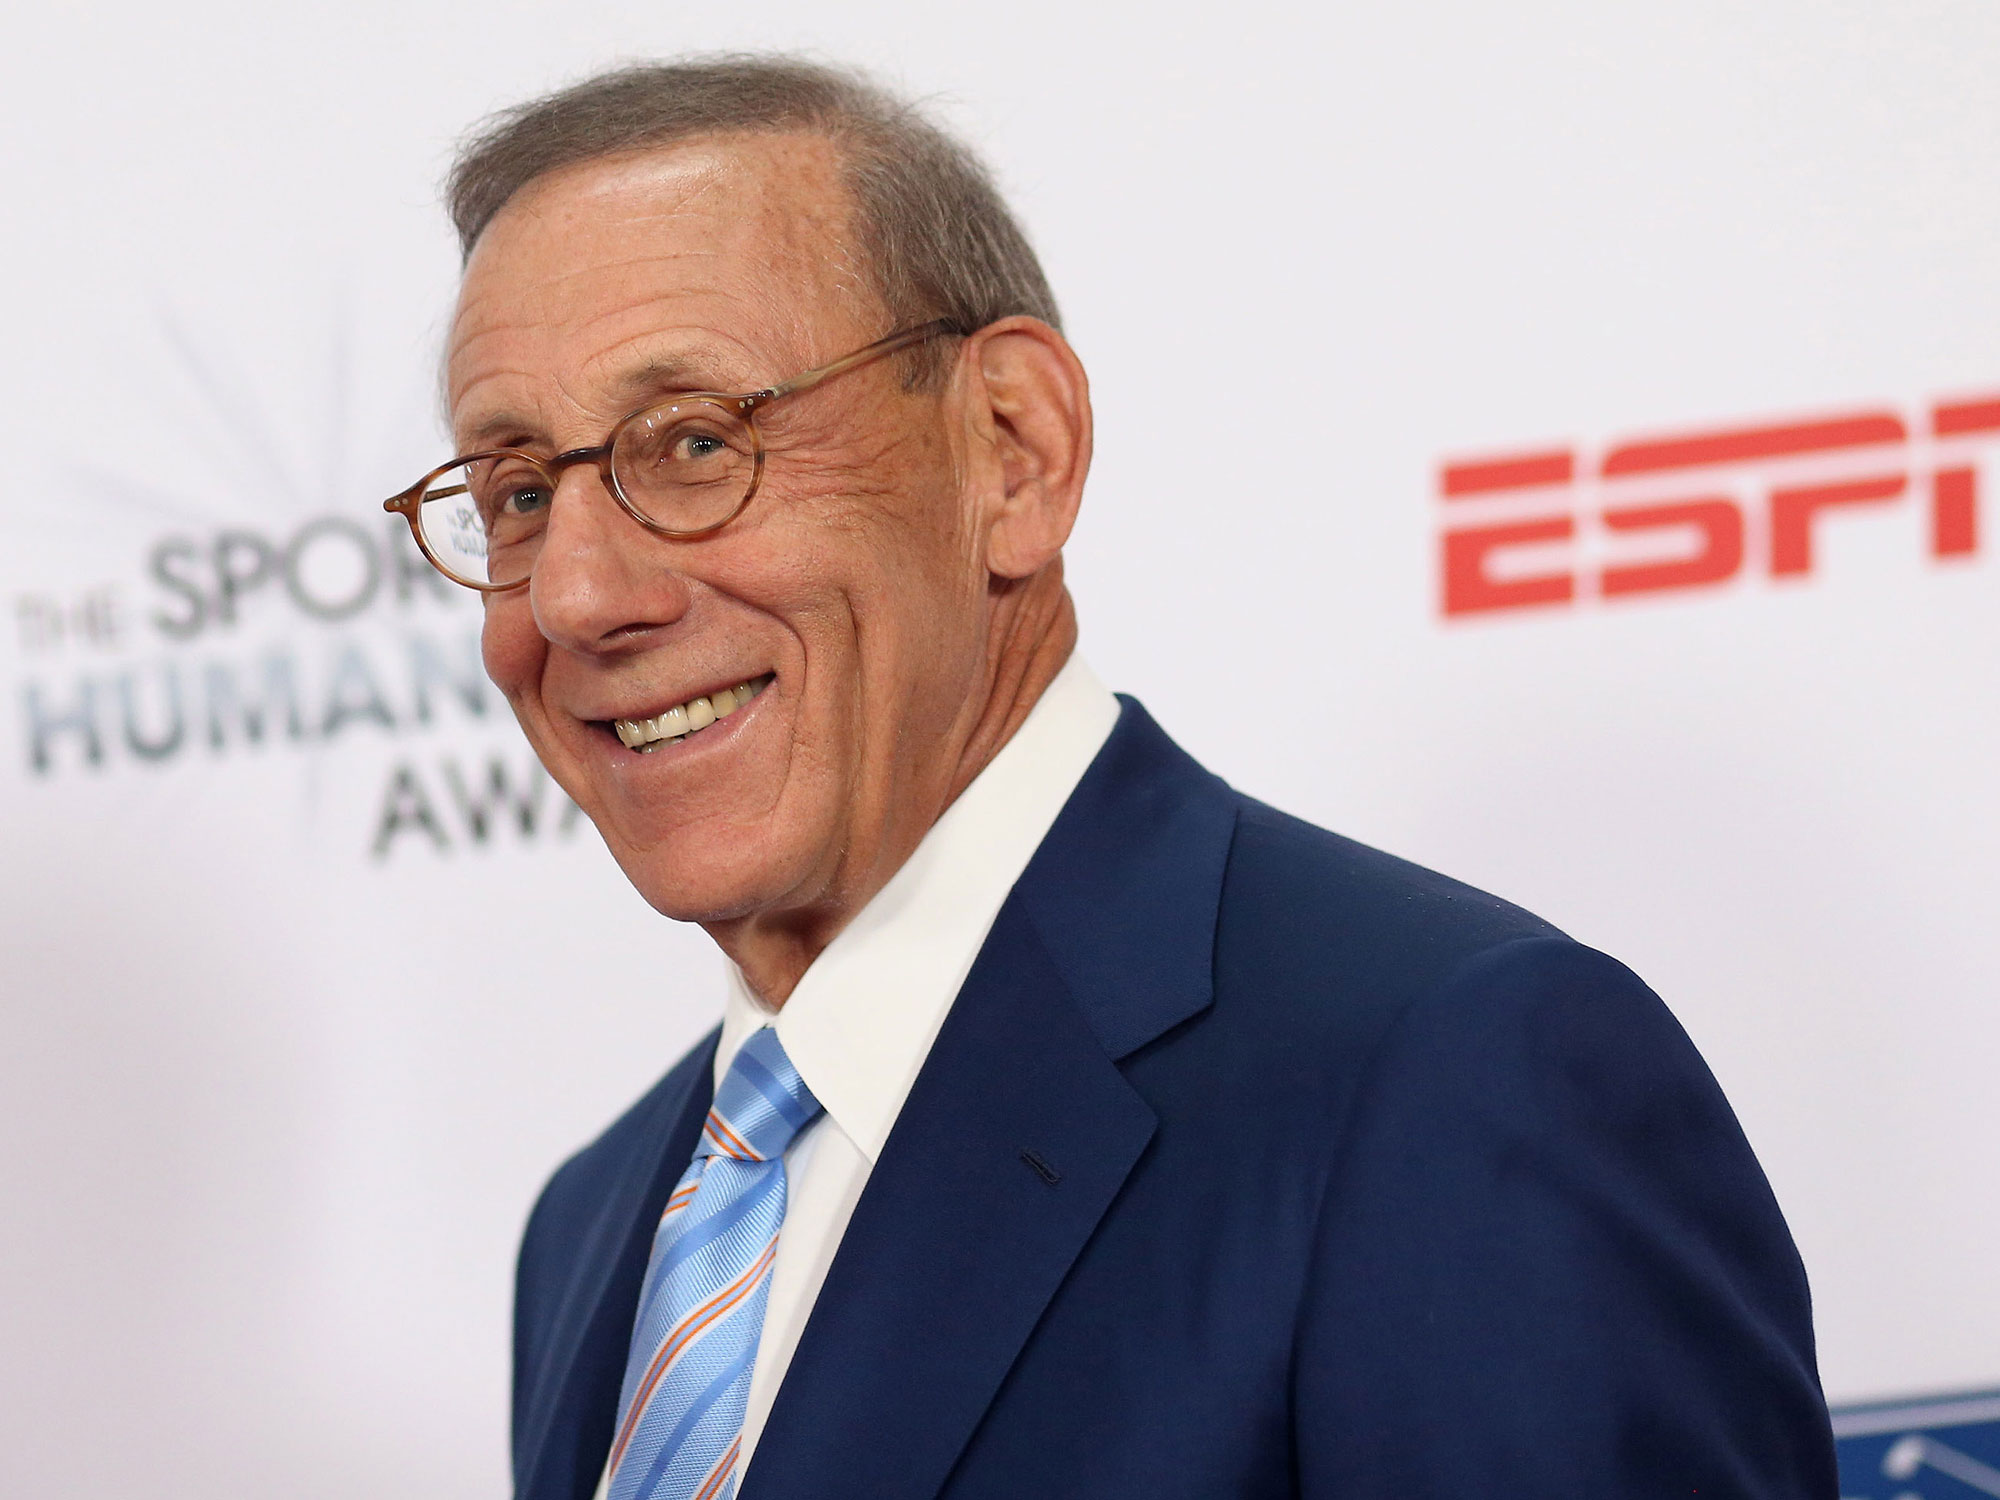 Stephen Ross is largely responsible for the Miami Clasico between Barcelona and Real Madrid in the 2017 ICC